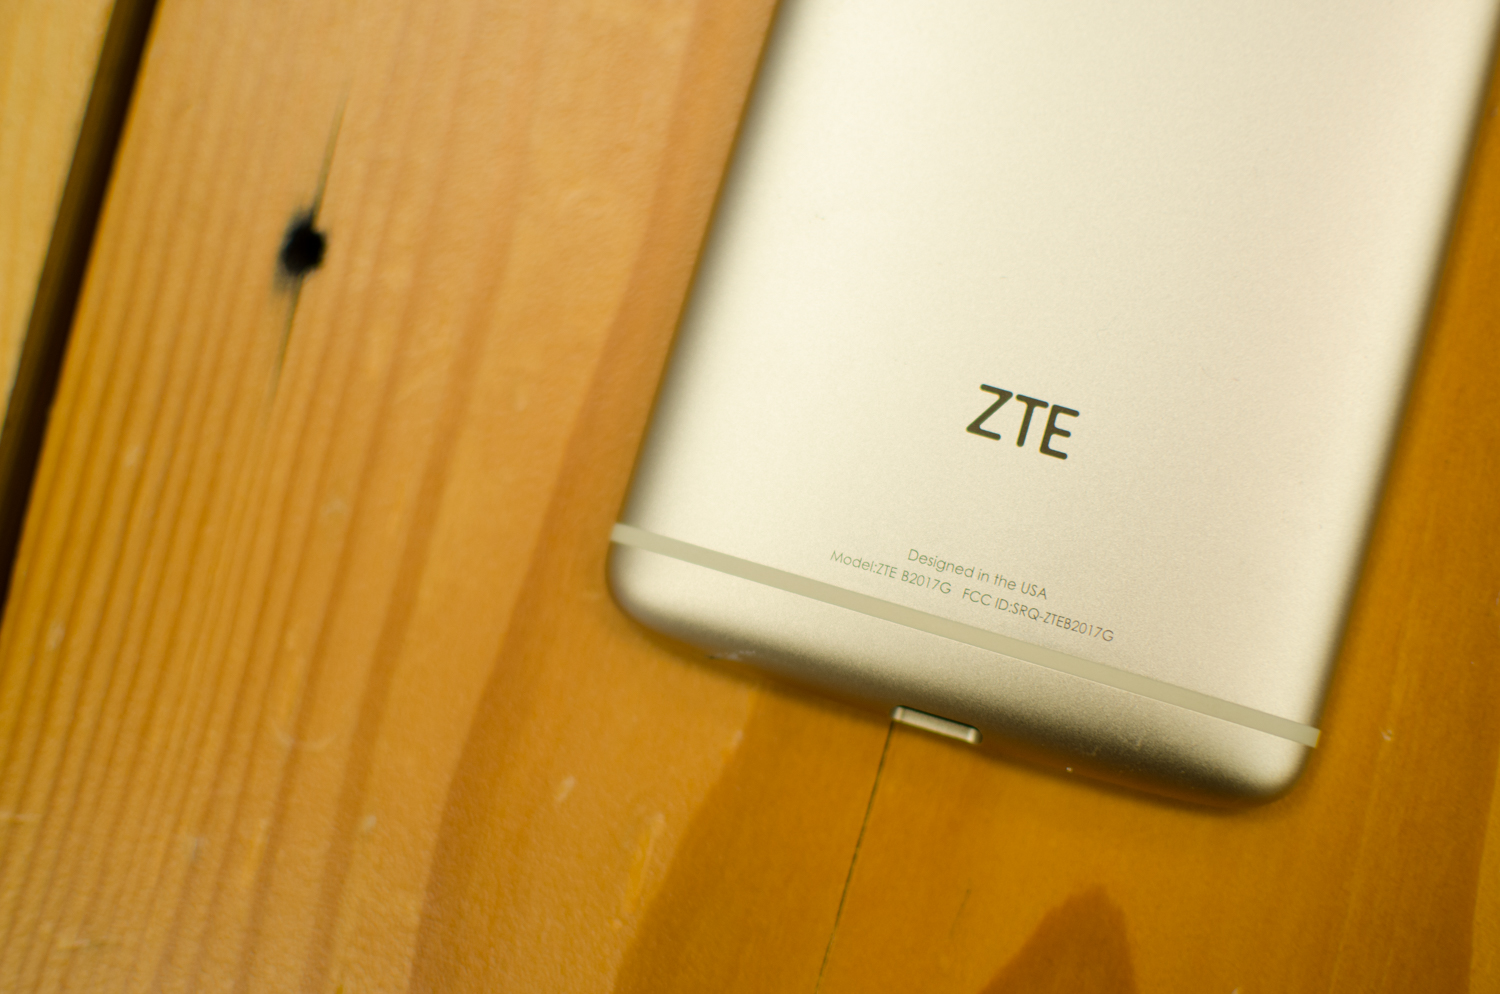 ZTE to launch 5G connectivity phone at MWC, will offer gigabit speeds""